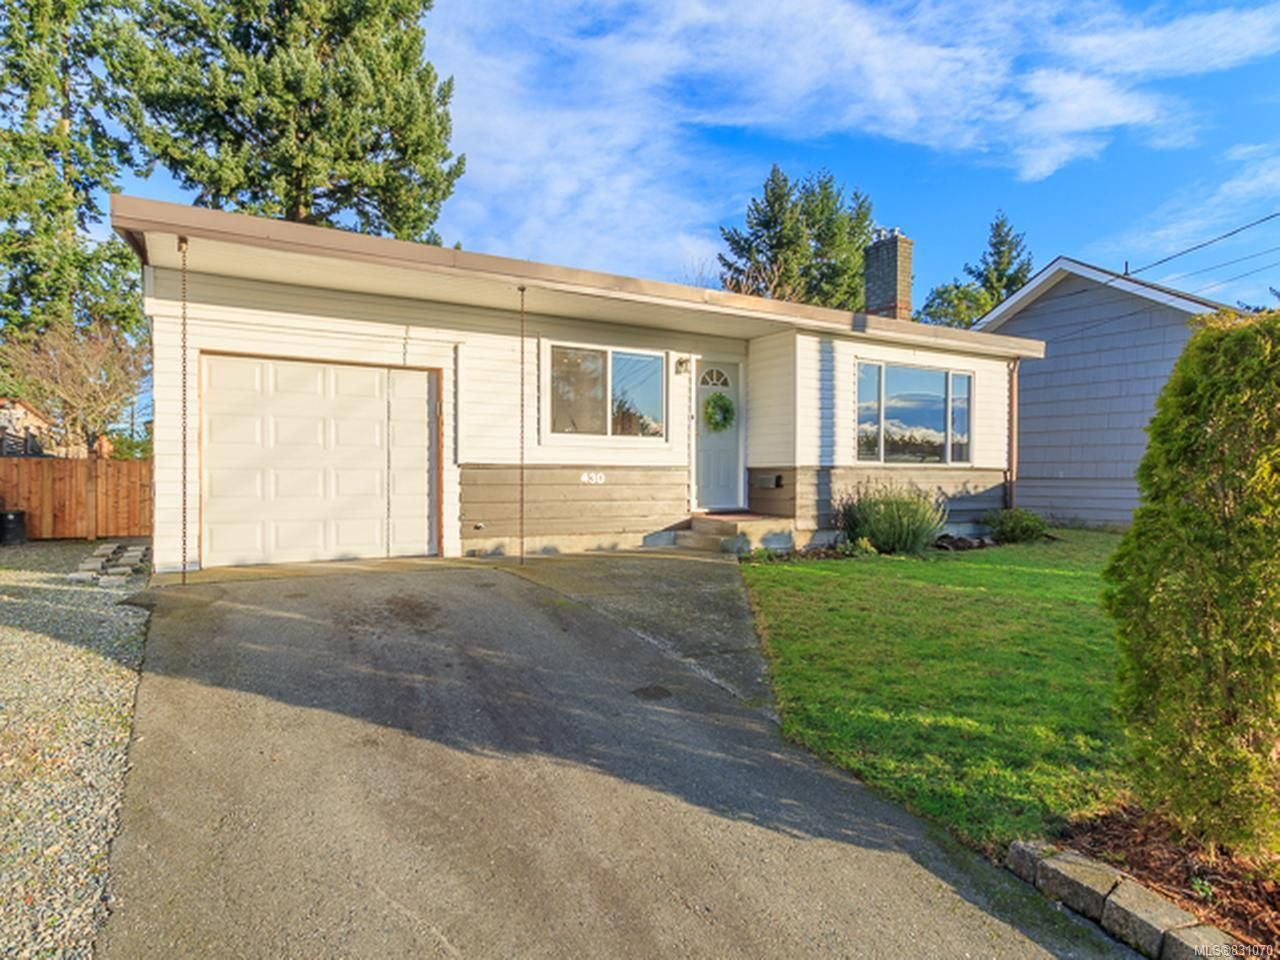 Main Photo: 430 JUNIPER STREET in NANAIMO: Na Brechin Hill House for sale (Nanaimo)  : MLS®# 831070